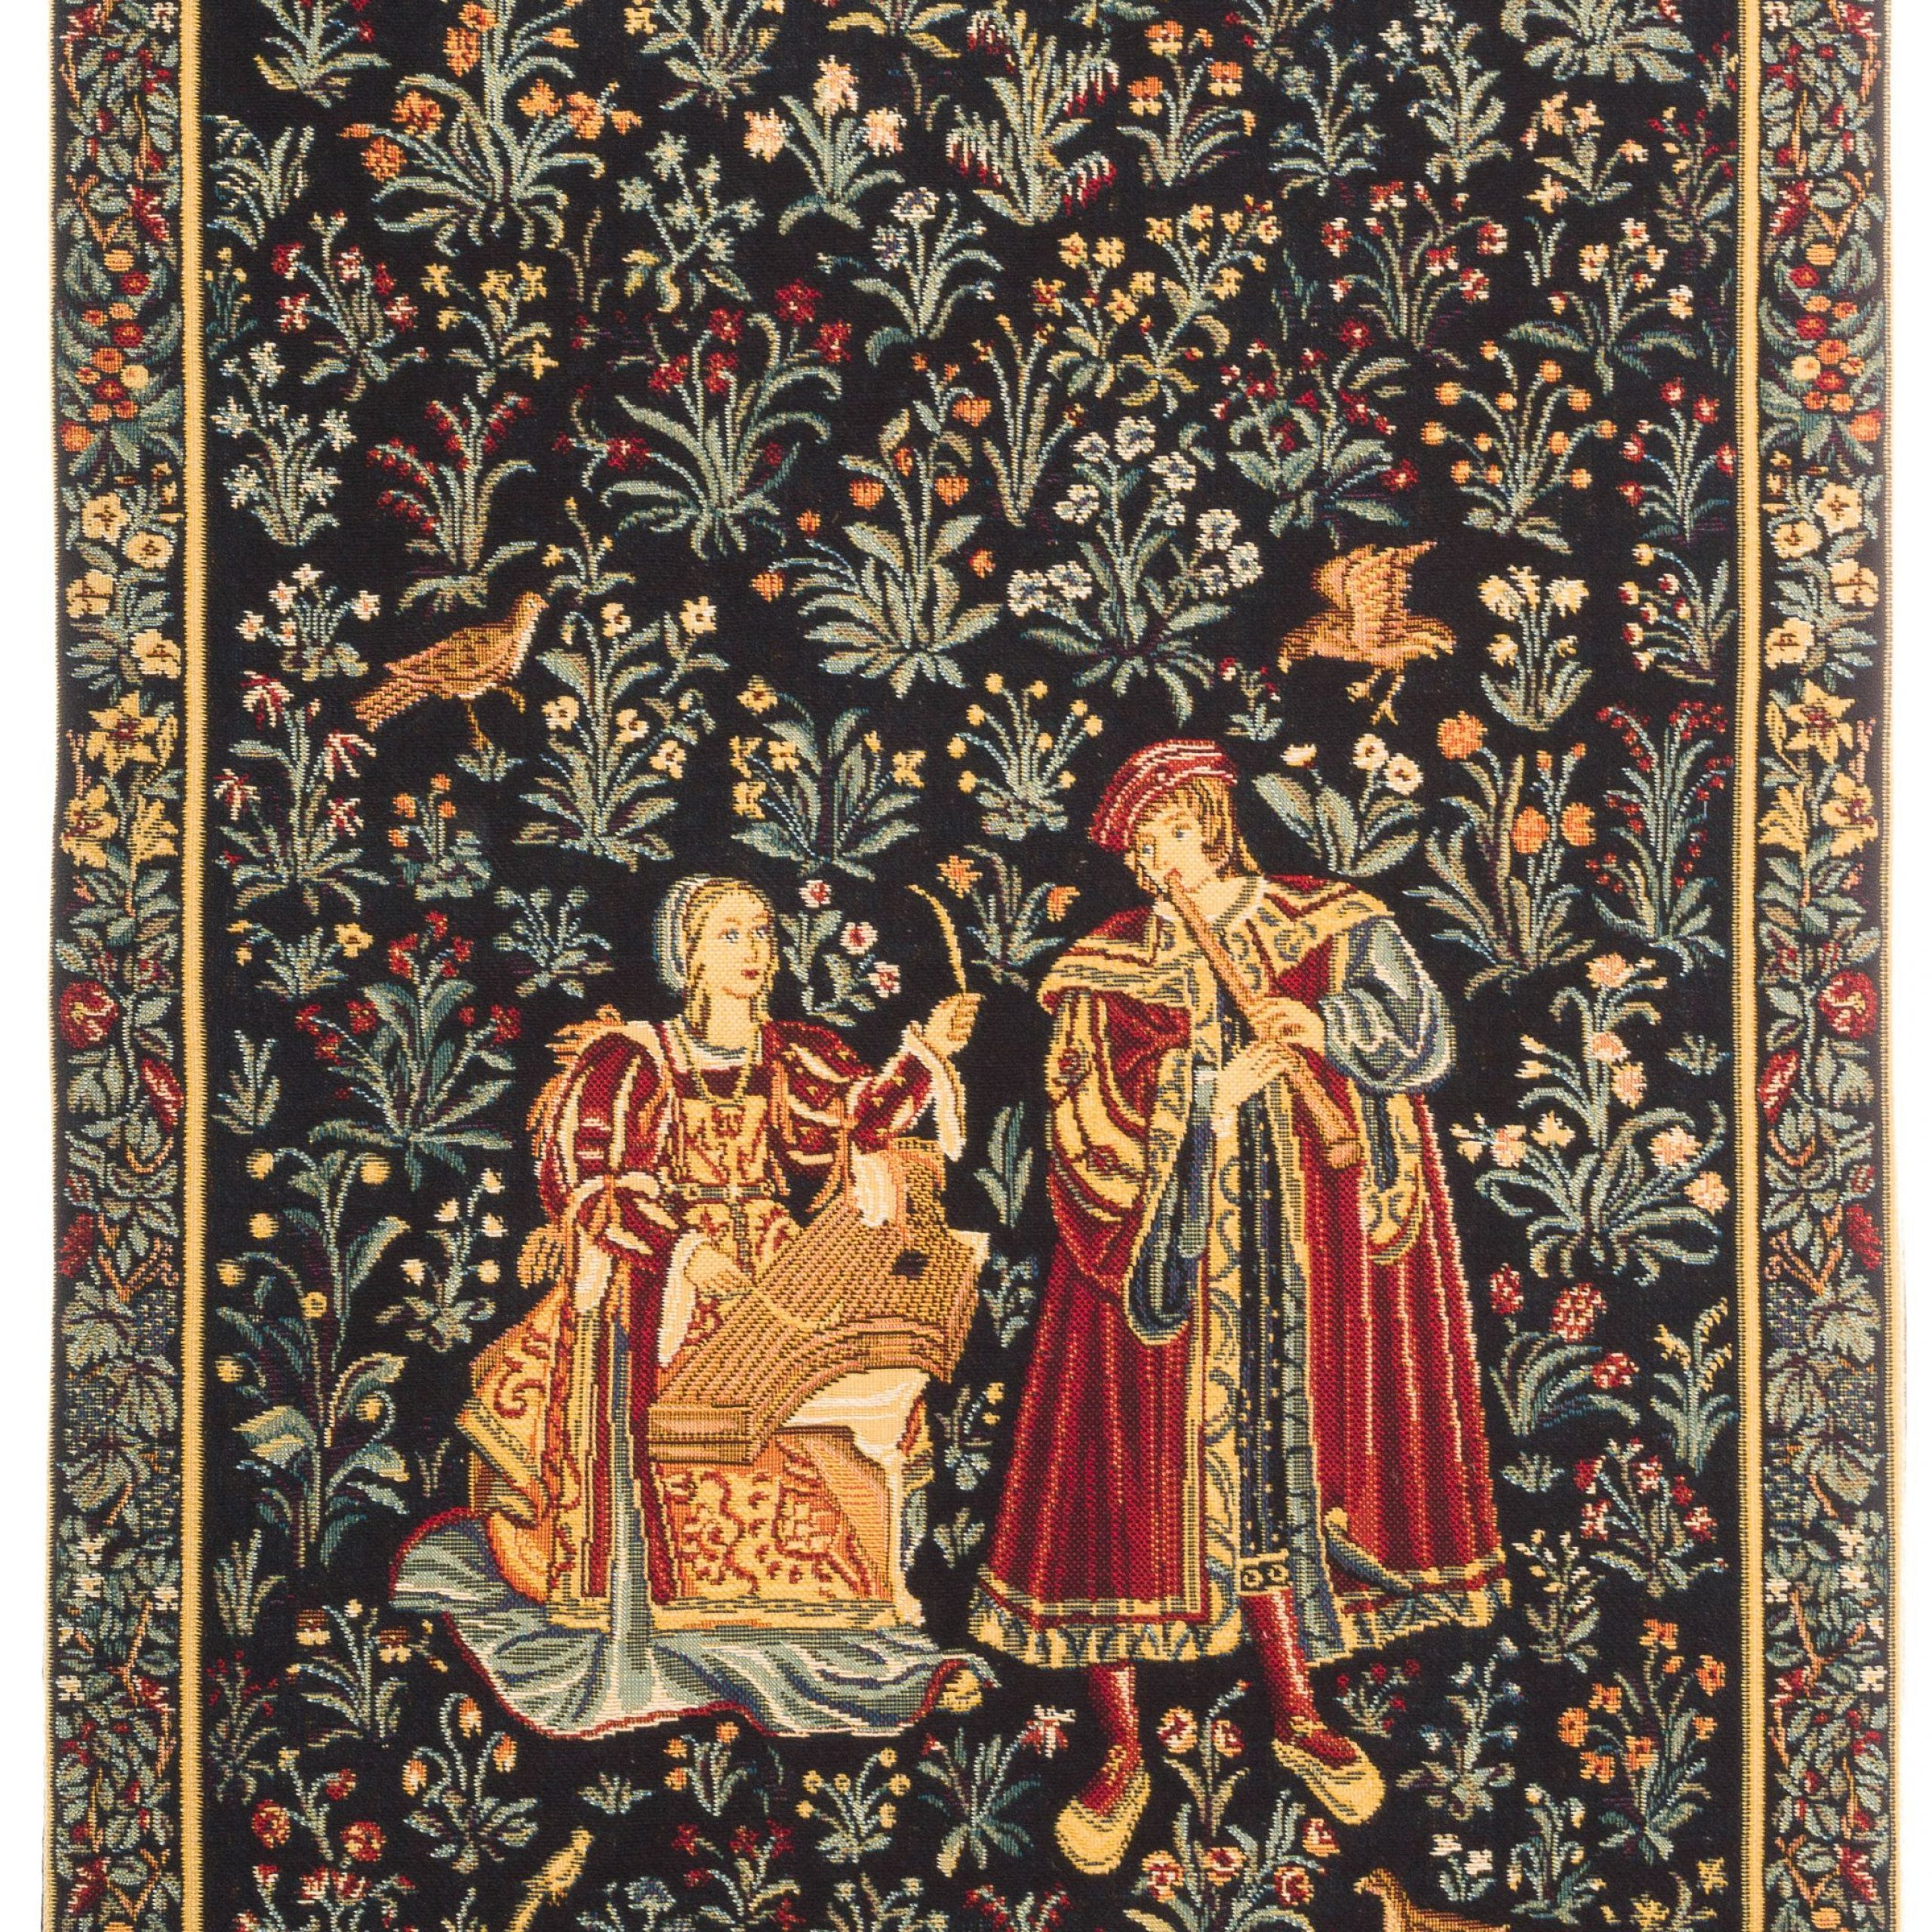 Medieval Tapestry Wall Hanging Concert Scene Millefleurs Throughout Recent Blended Fabric European Five English Horses Tapestries (View 6 of 20)